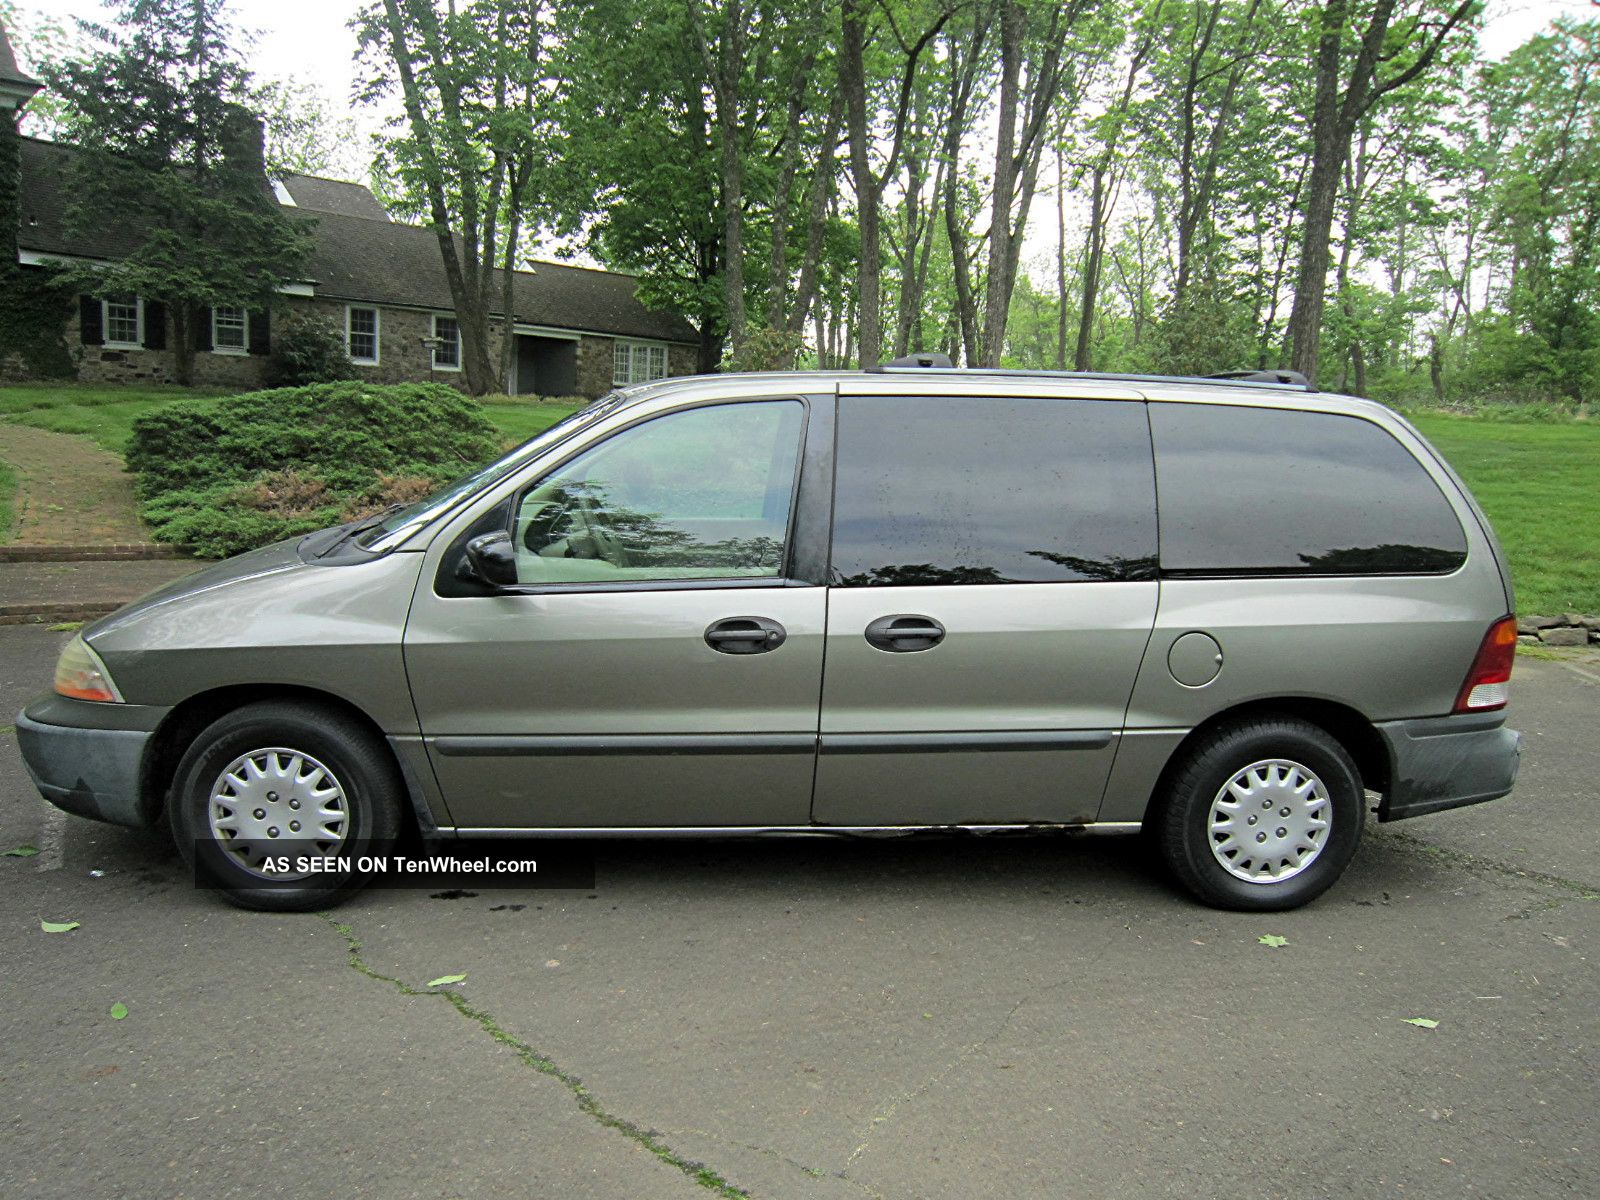 2001 ford windstar lx mini passenger van 4 door 3 8l. Black Bedroom Furniture Sets. Home Design Ideas